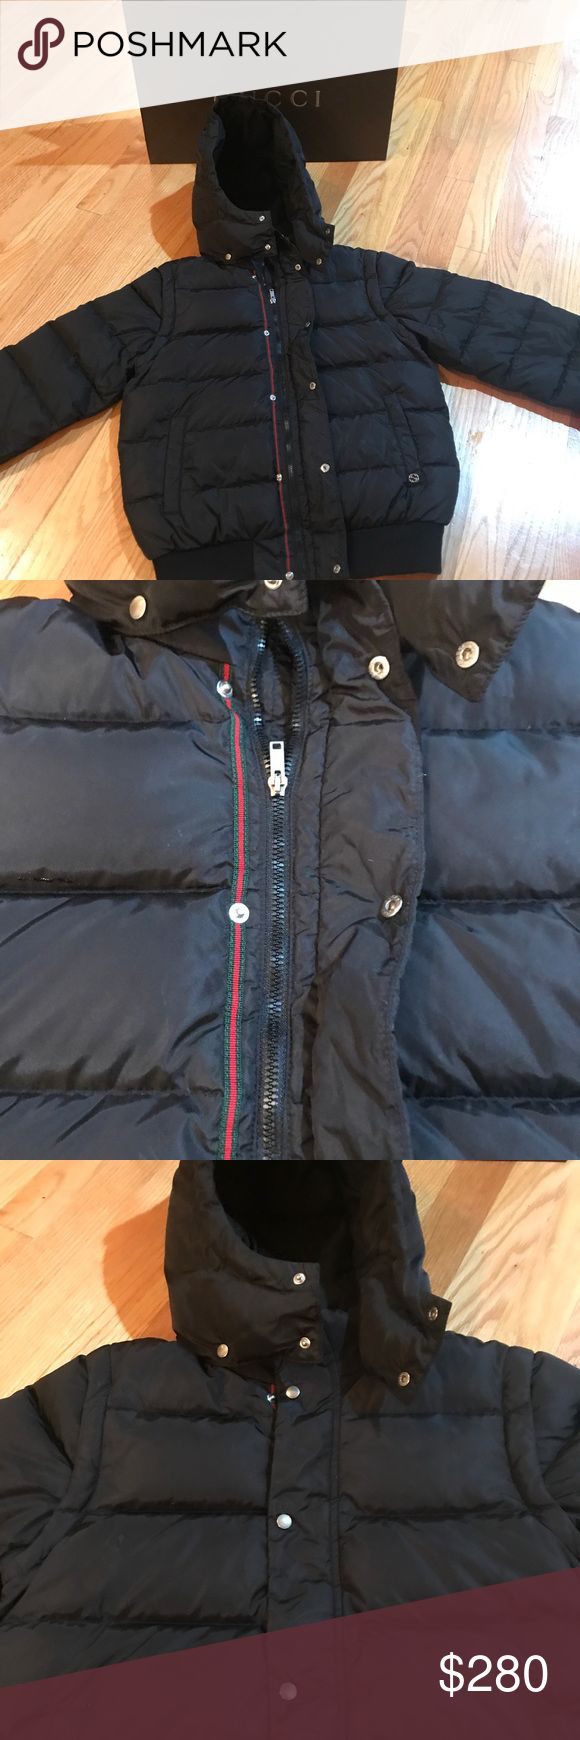 Boys Gucci winter Coat Like new!!! Boys Gucci coat. It's in perfection condition, great for any little man. Keeps you really warm! Gucci Jackets & Coats Puffers